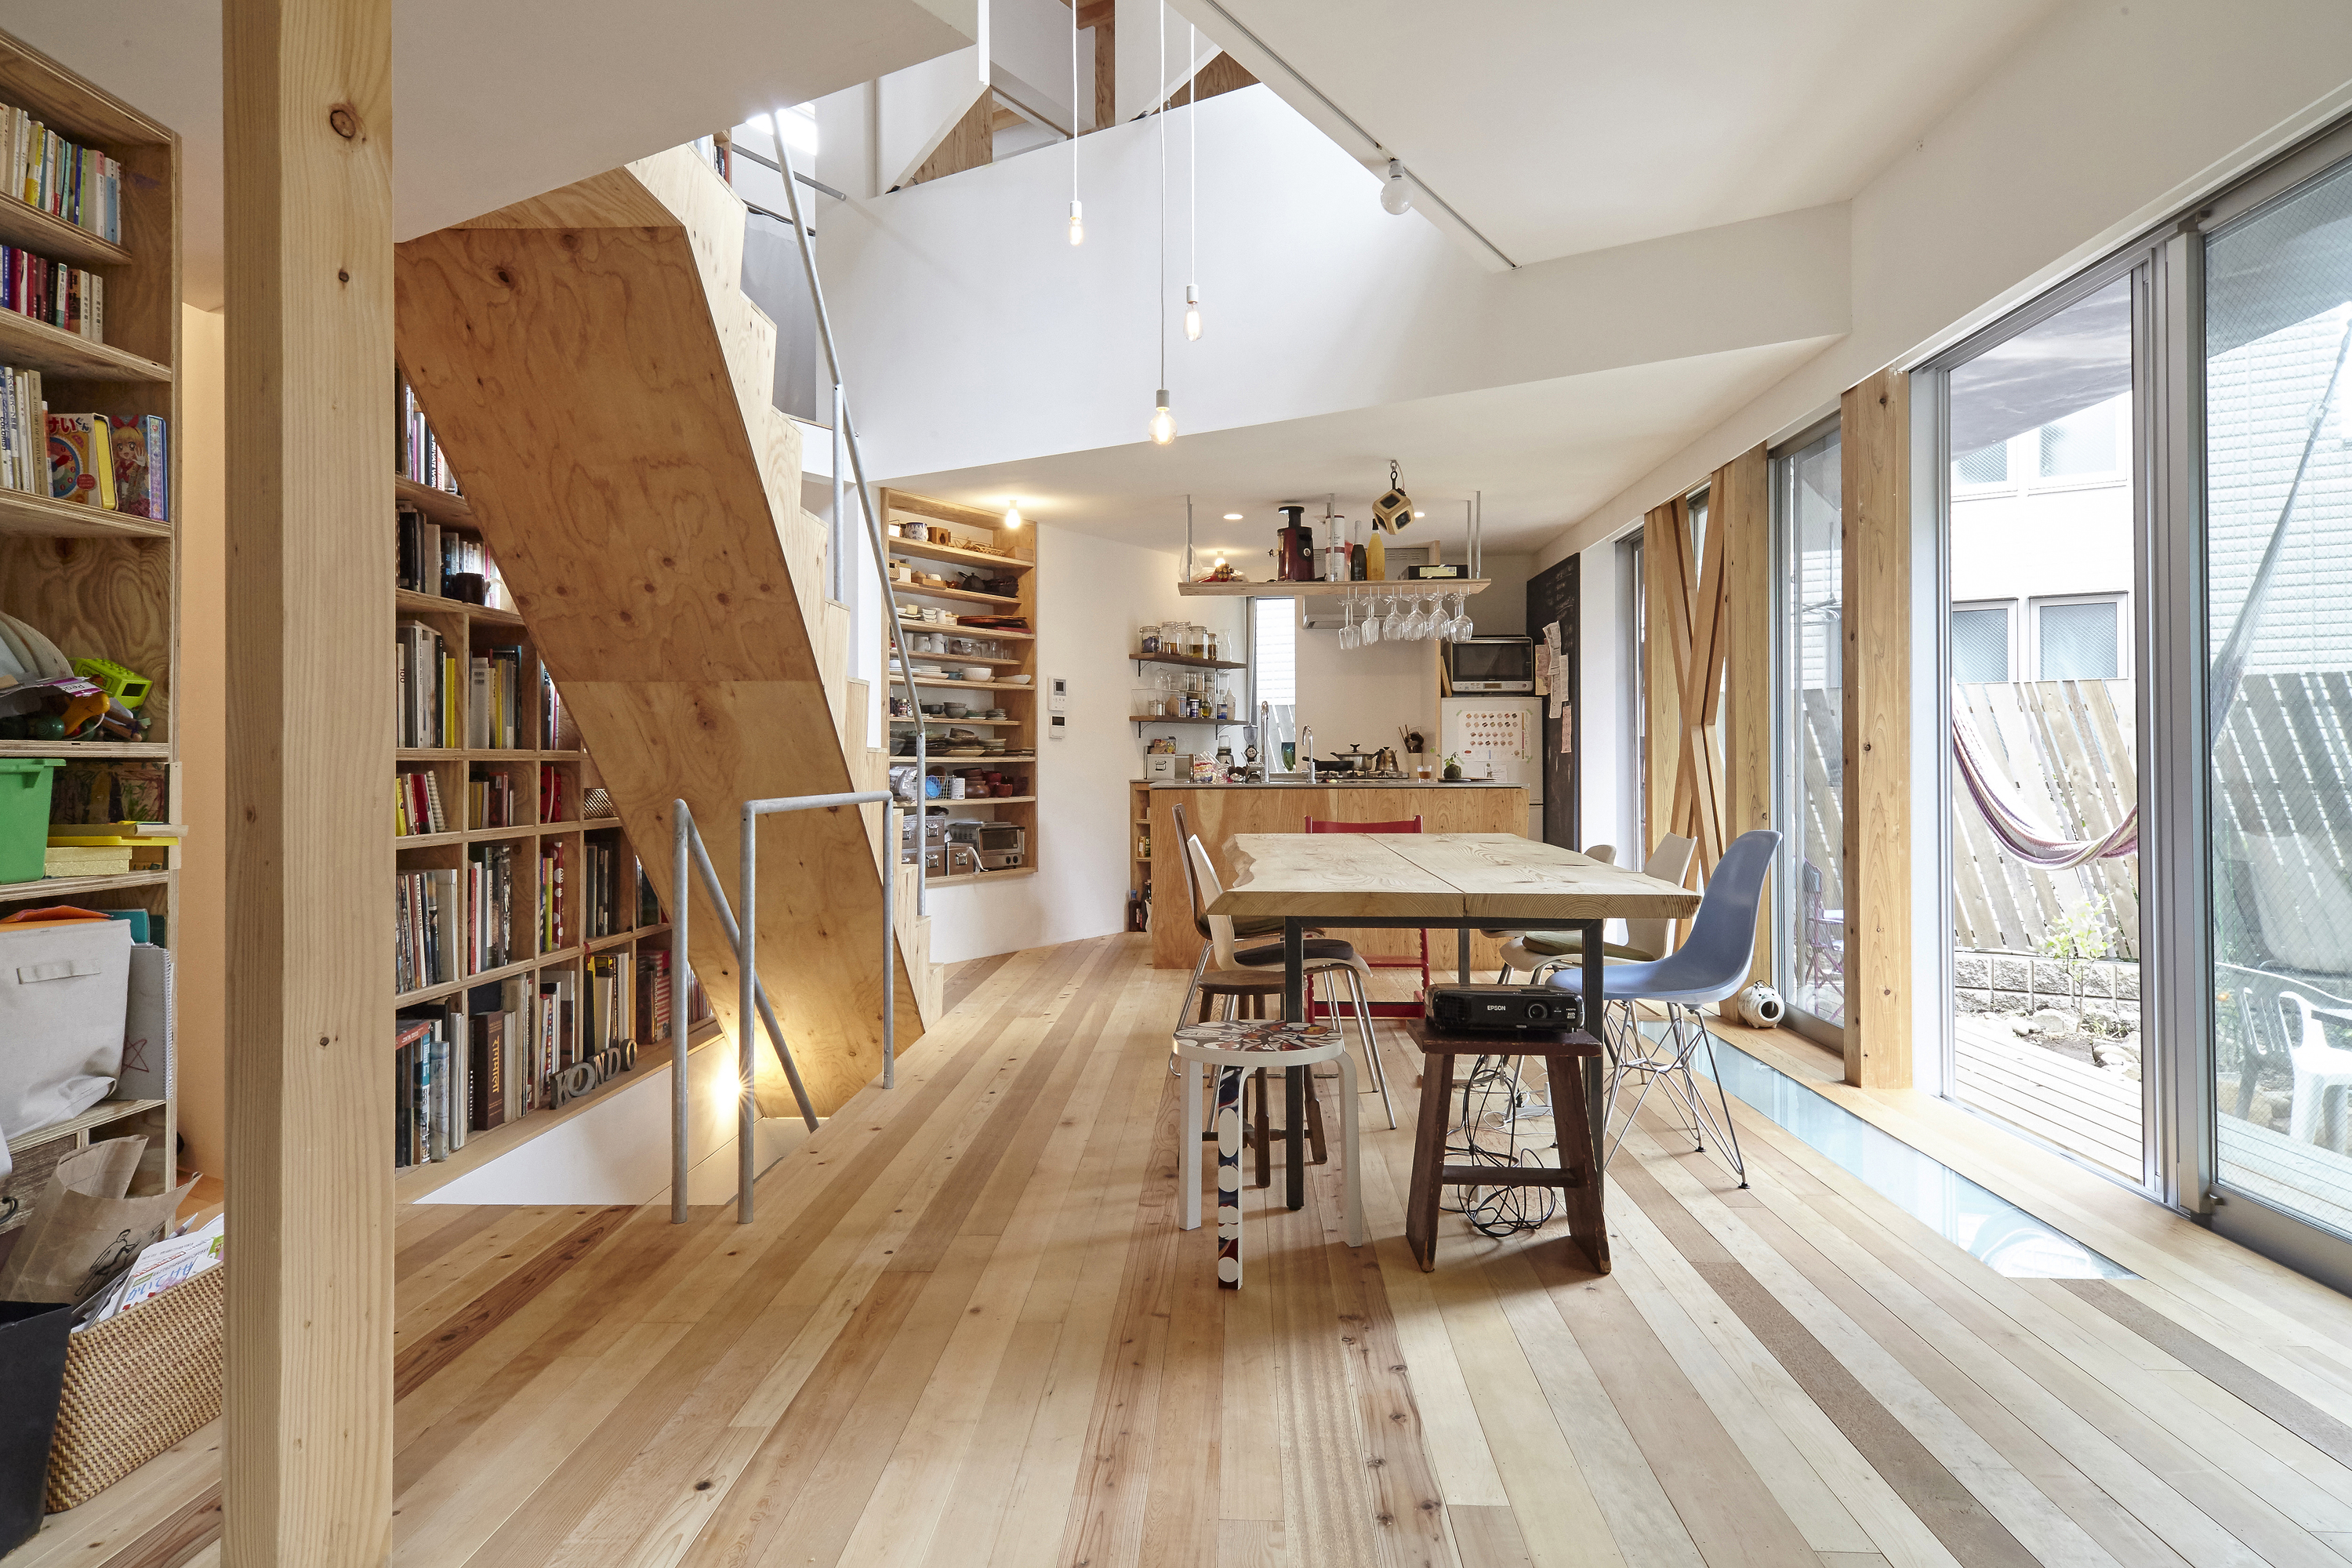 Ten Of The Coolest Airbnb Rentals In Japan